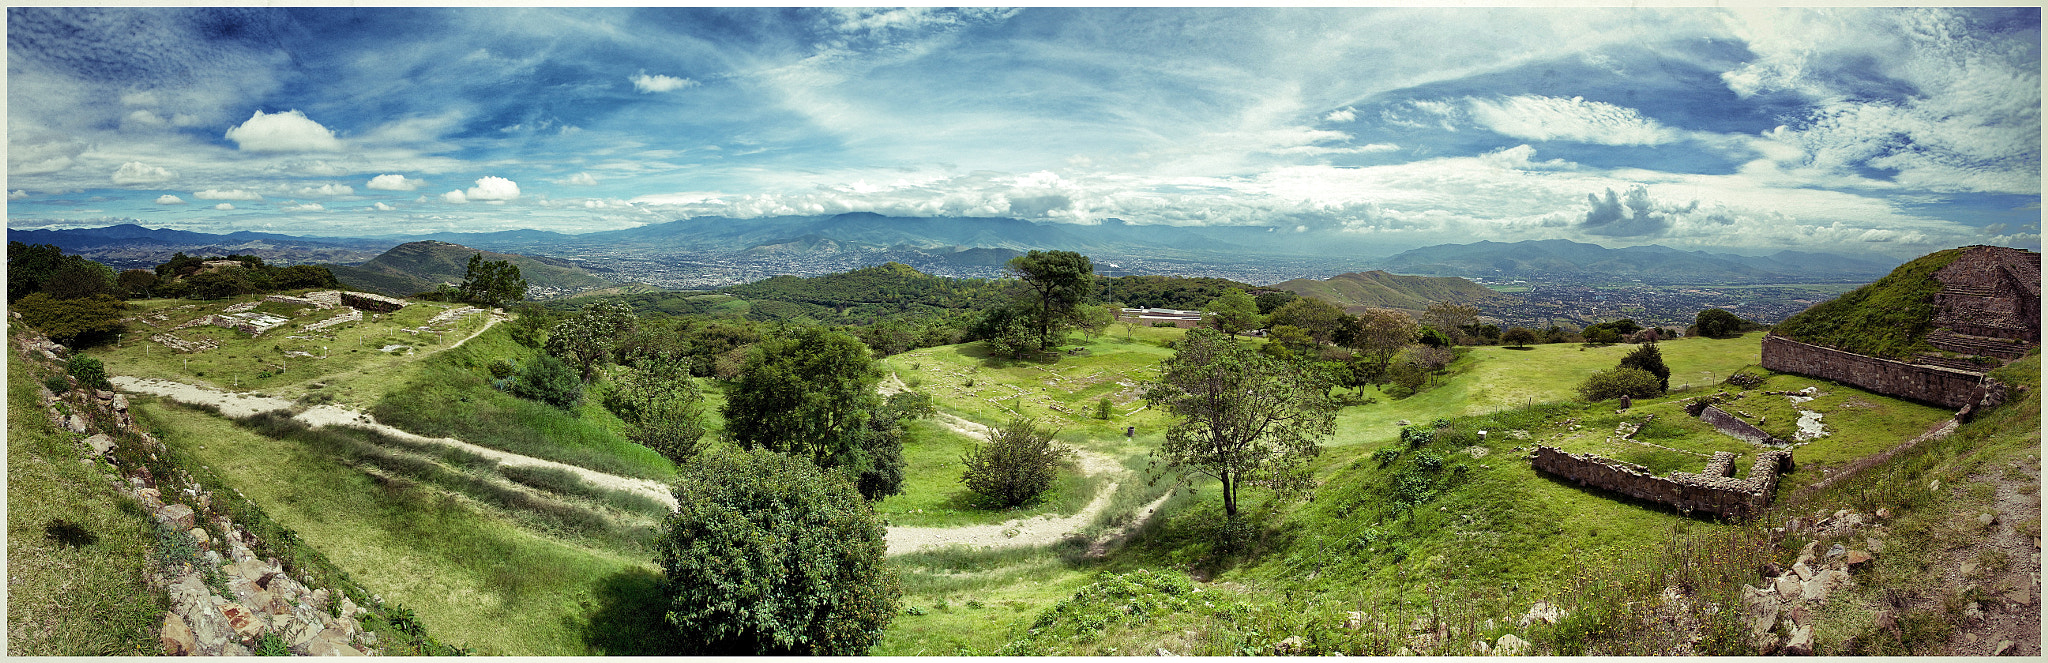 Photograph Oaxaca Monte Alban by Benedeto Michaeles on 500px